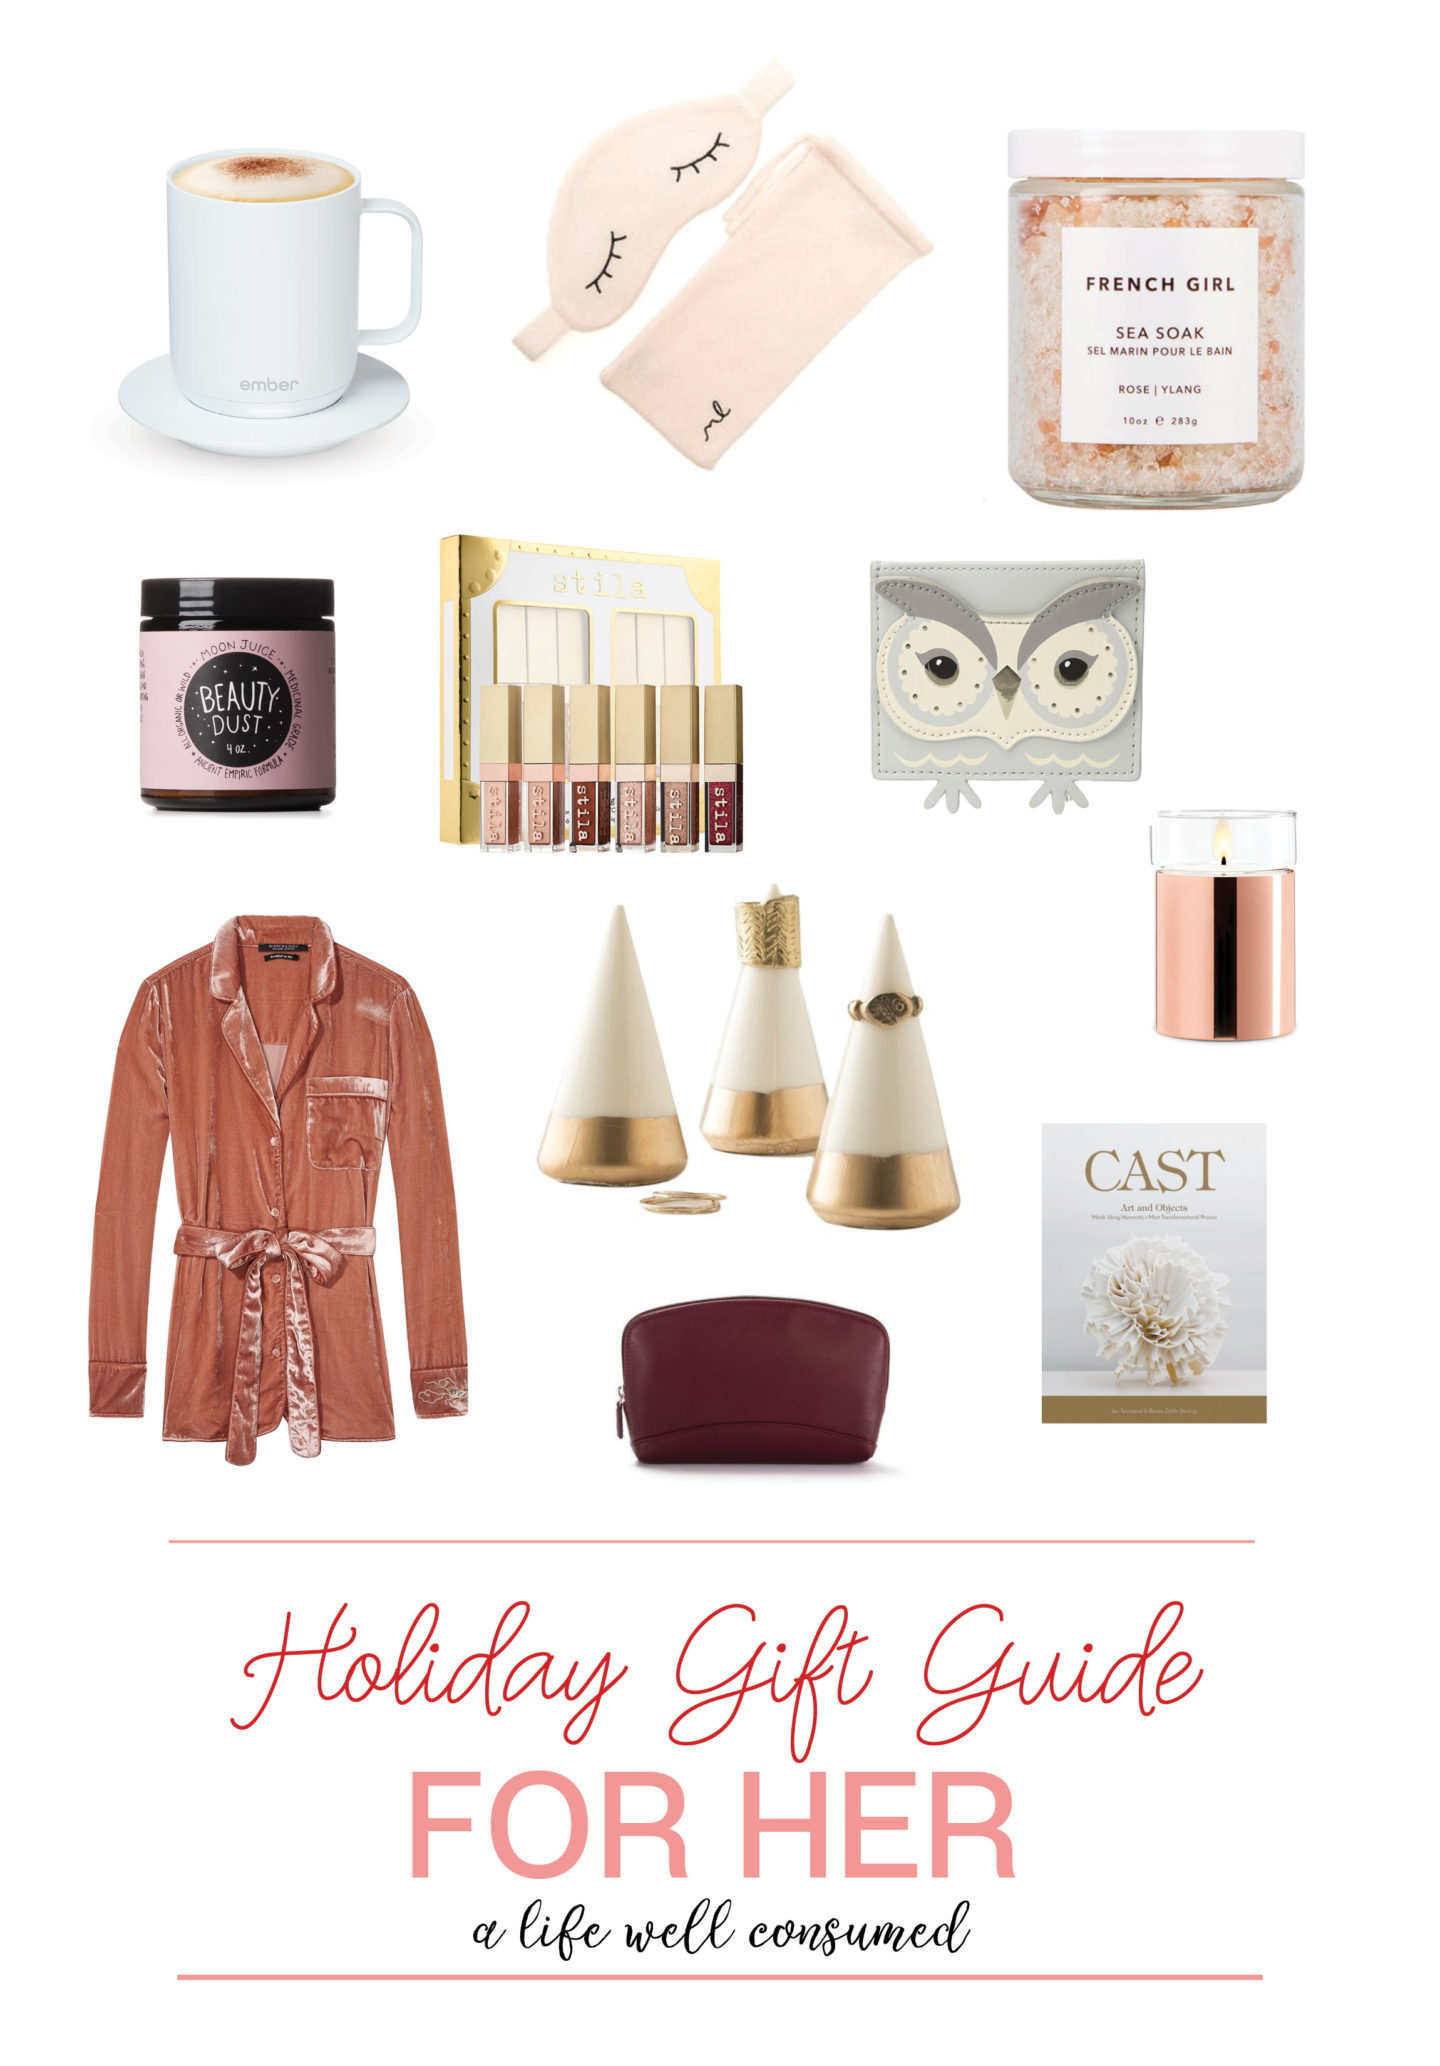 CAST.holiday-gift-guide-her-a-life-well-consumed-main.jpg